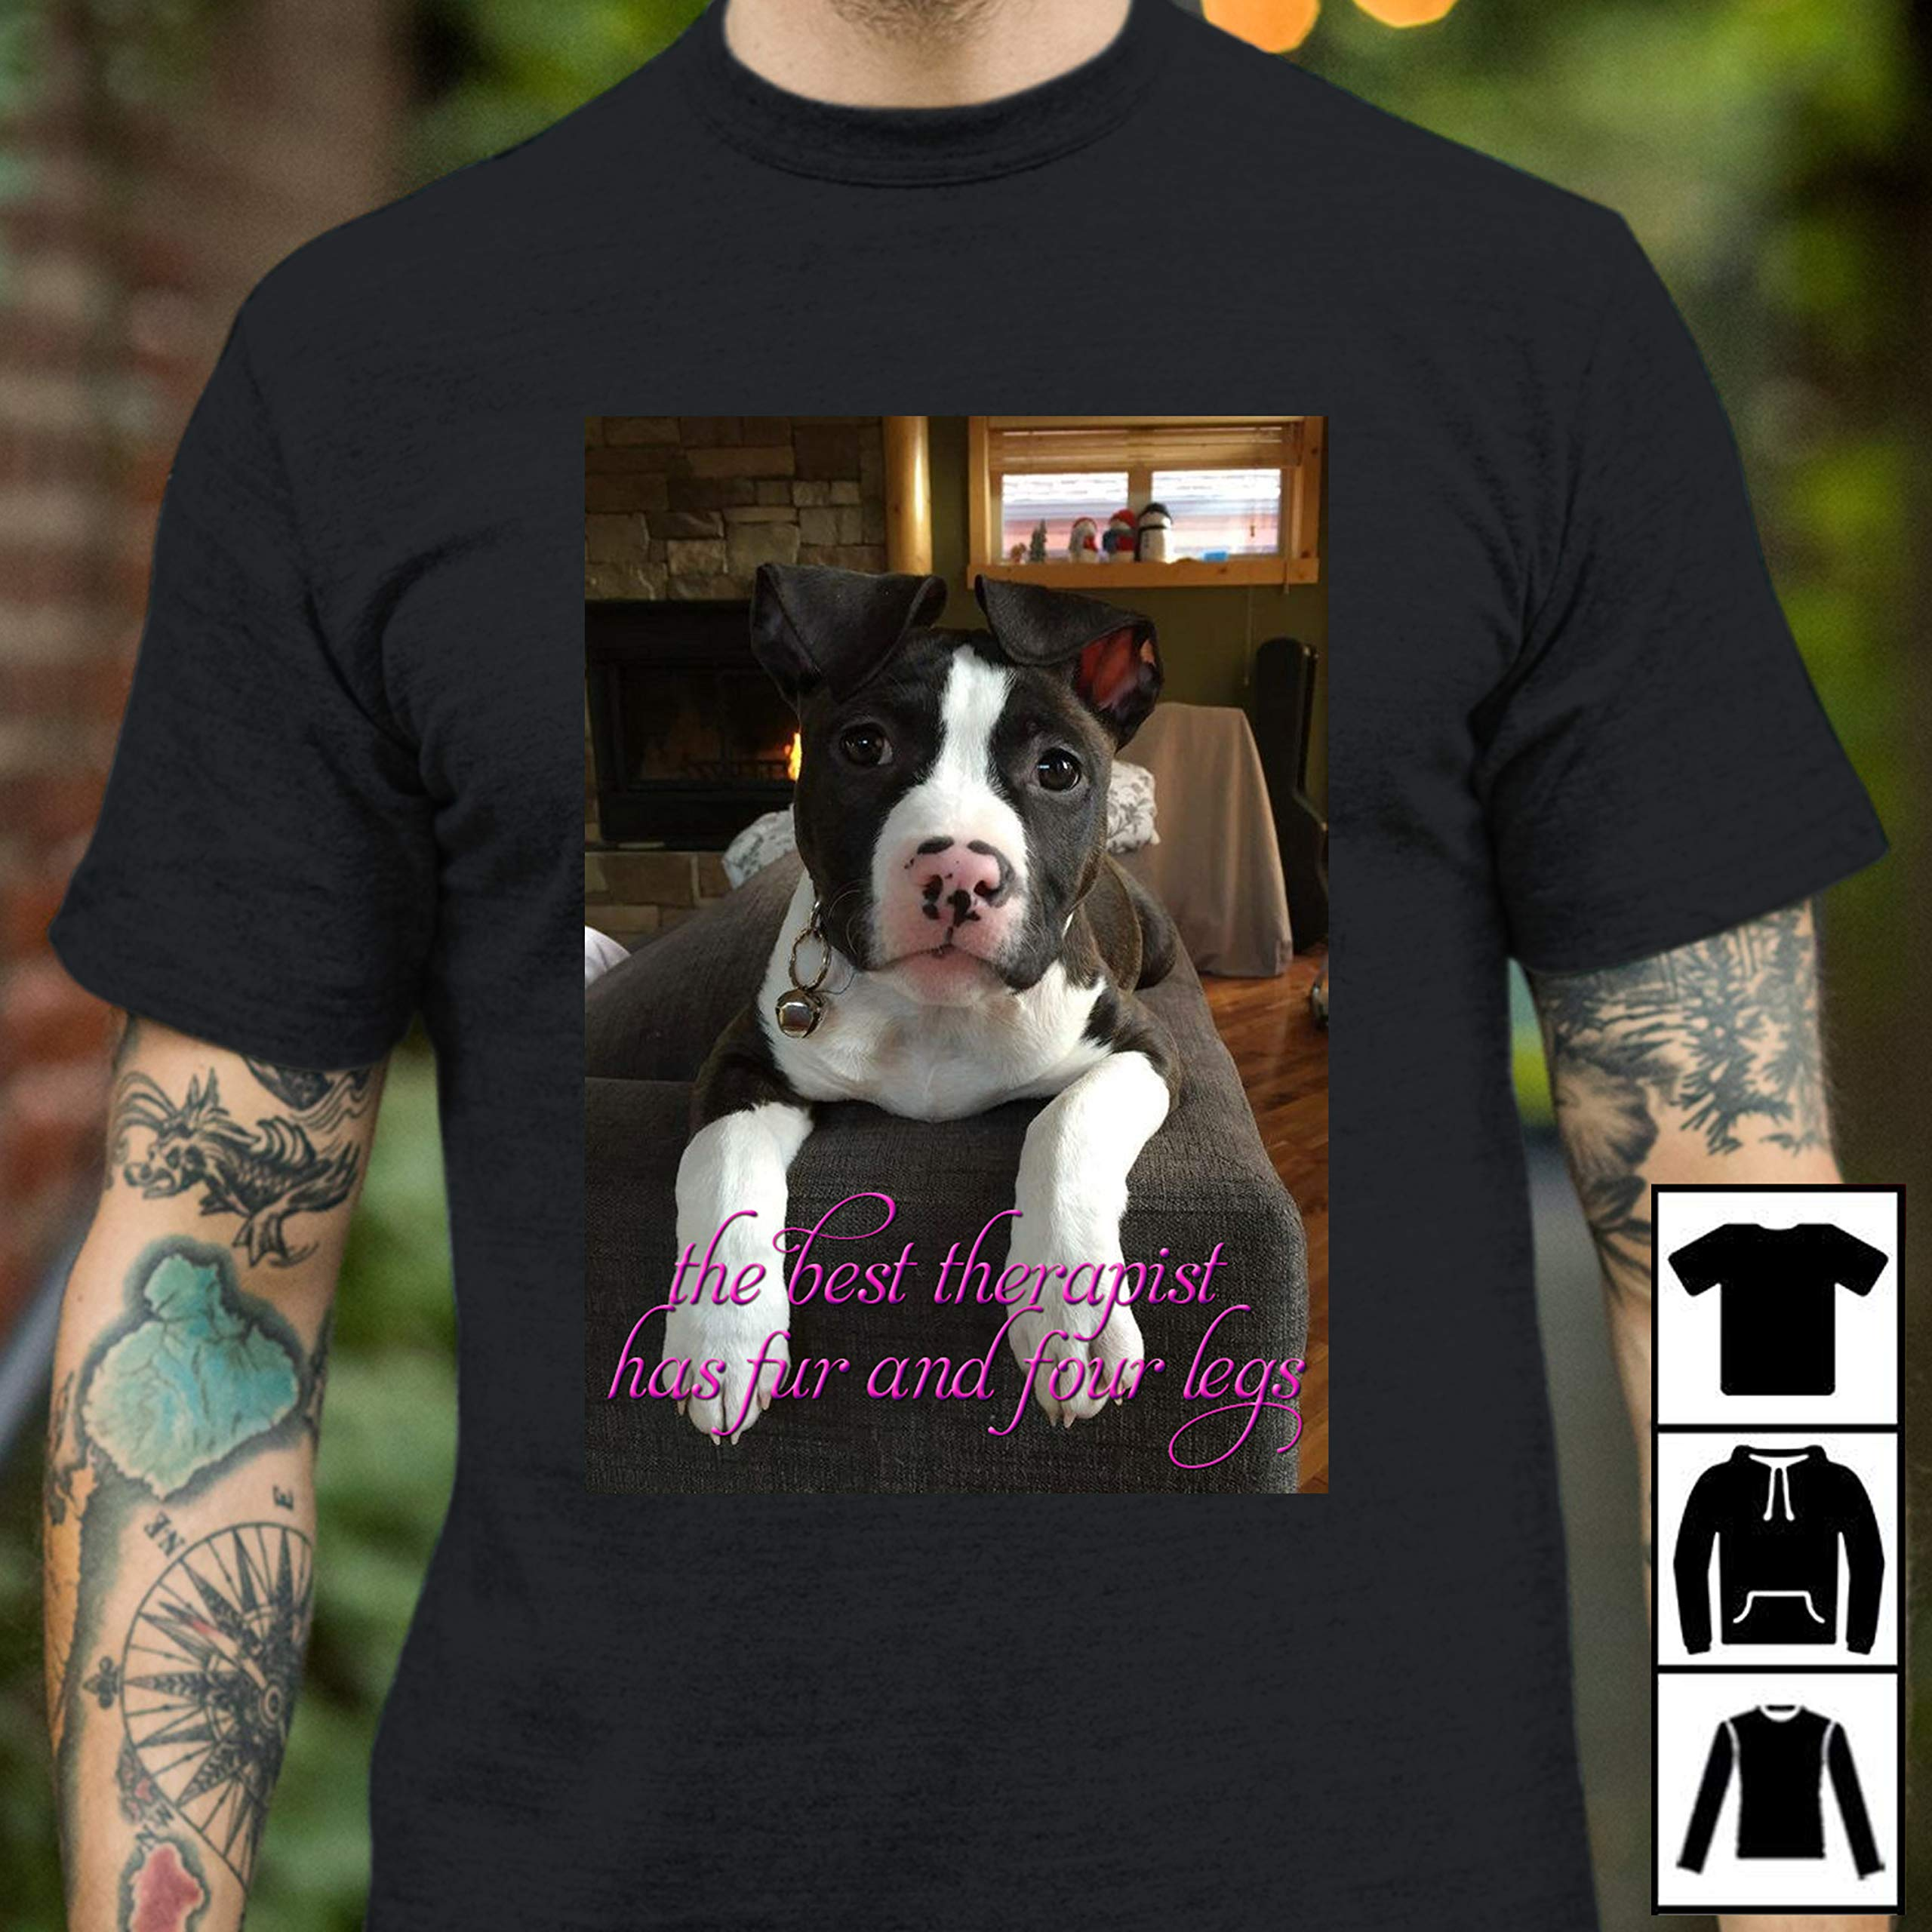 The Best Therapist Has Fur And Four Legs Dog Tshirt Long Tshirt